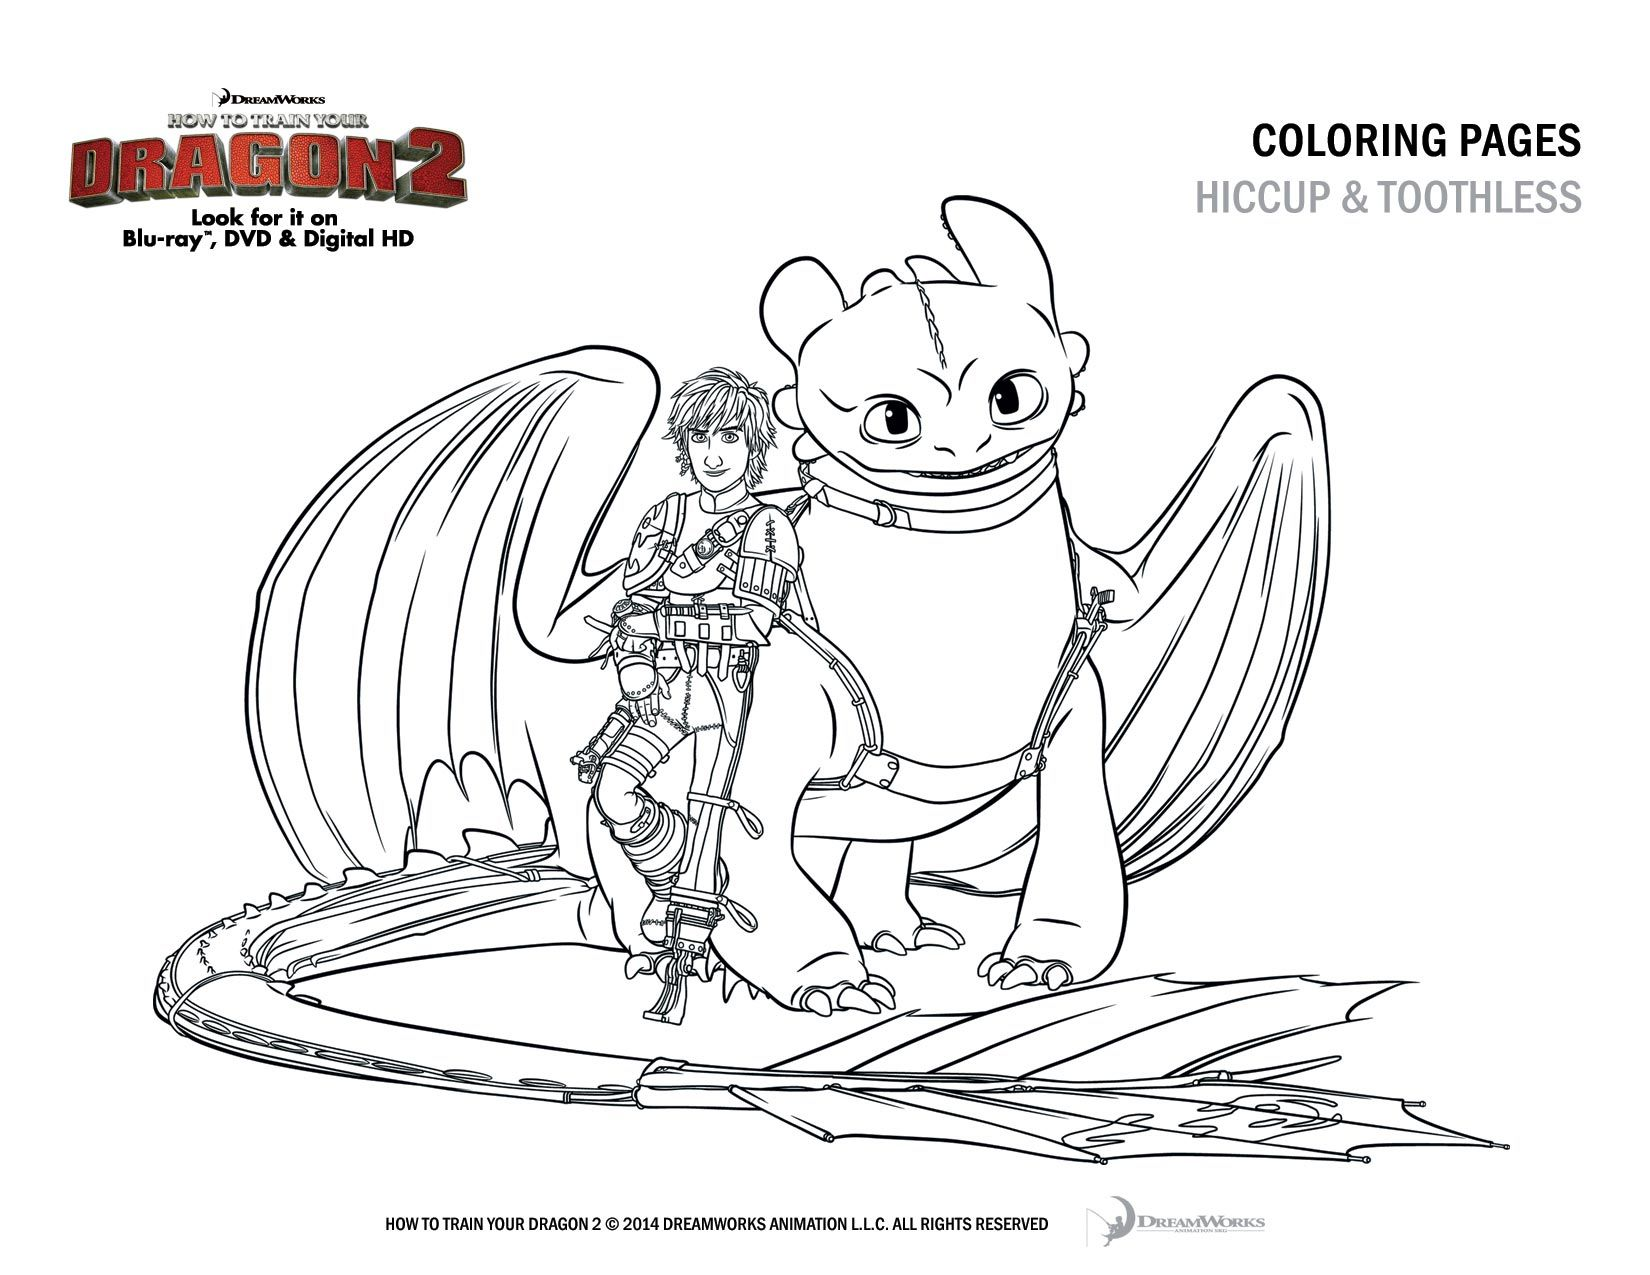 How To Train Your Dragon 2 In Stores Now Printables And A Giveaway